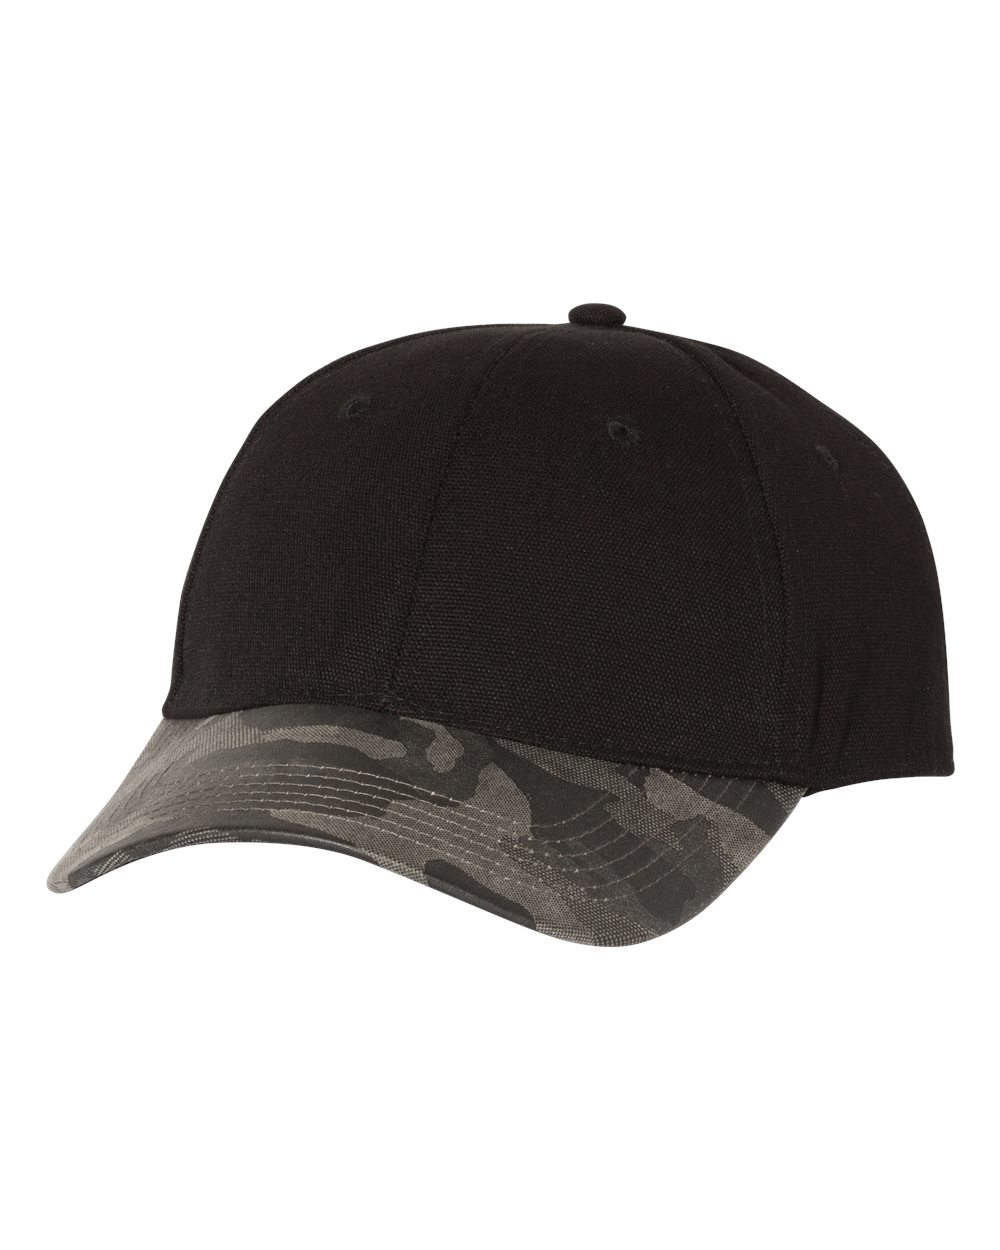 Outdoor Cap GHP100 - Canvas Crown with Weathered Camo ...